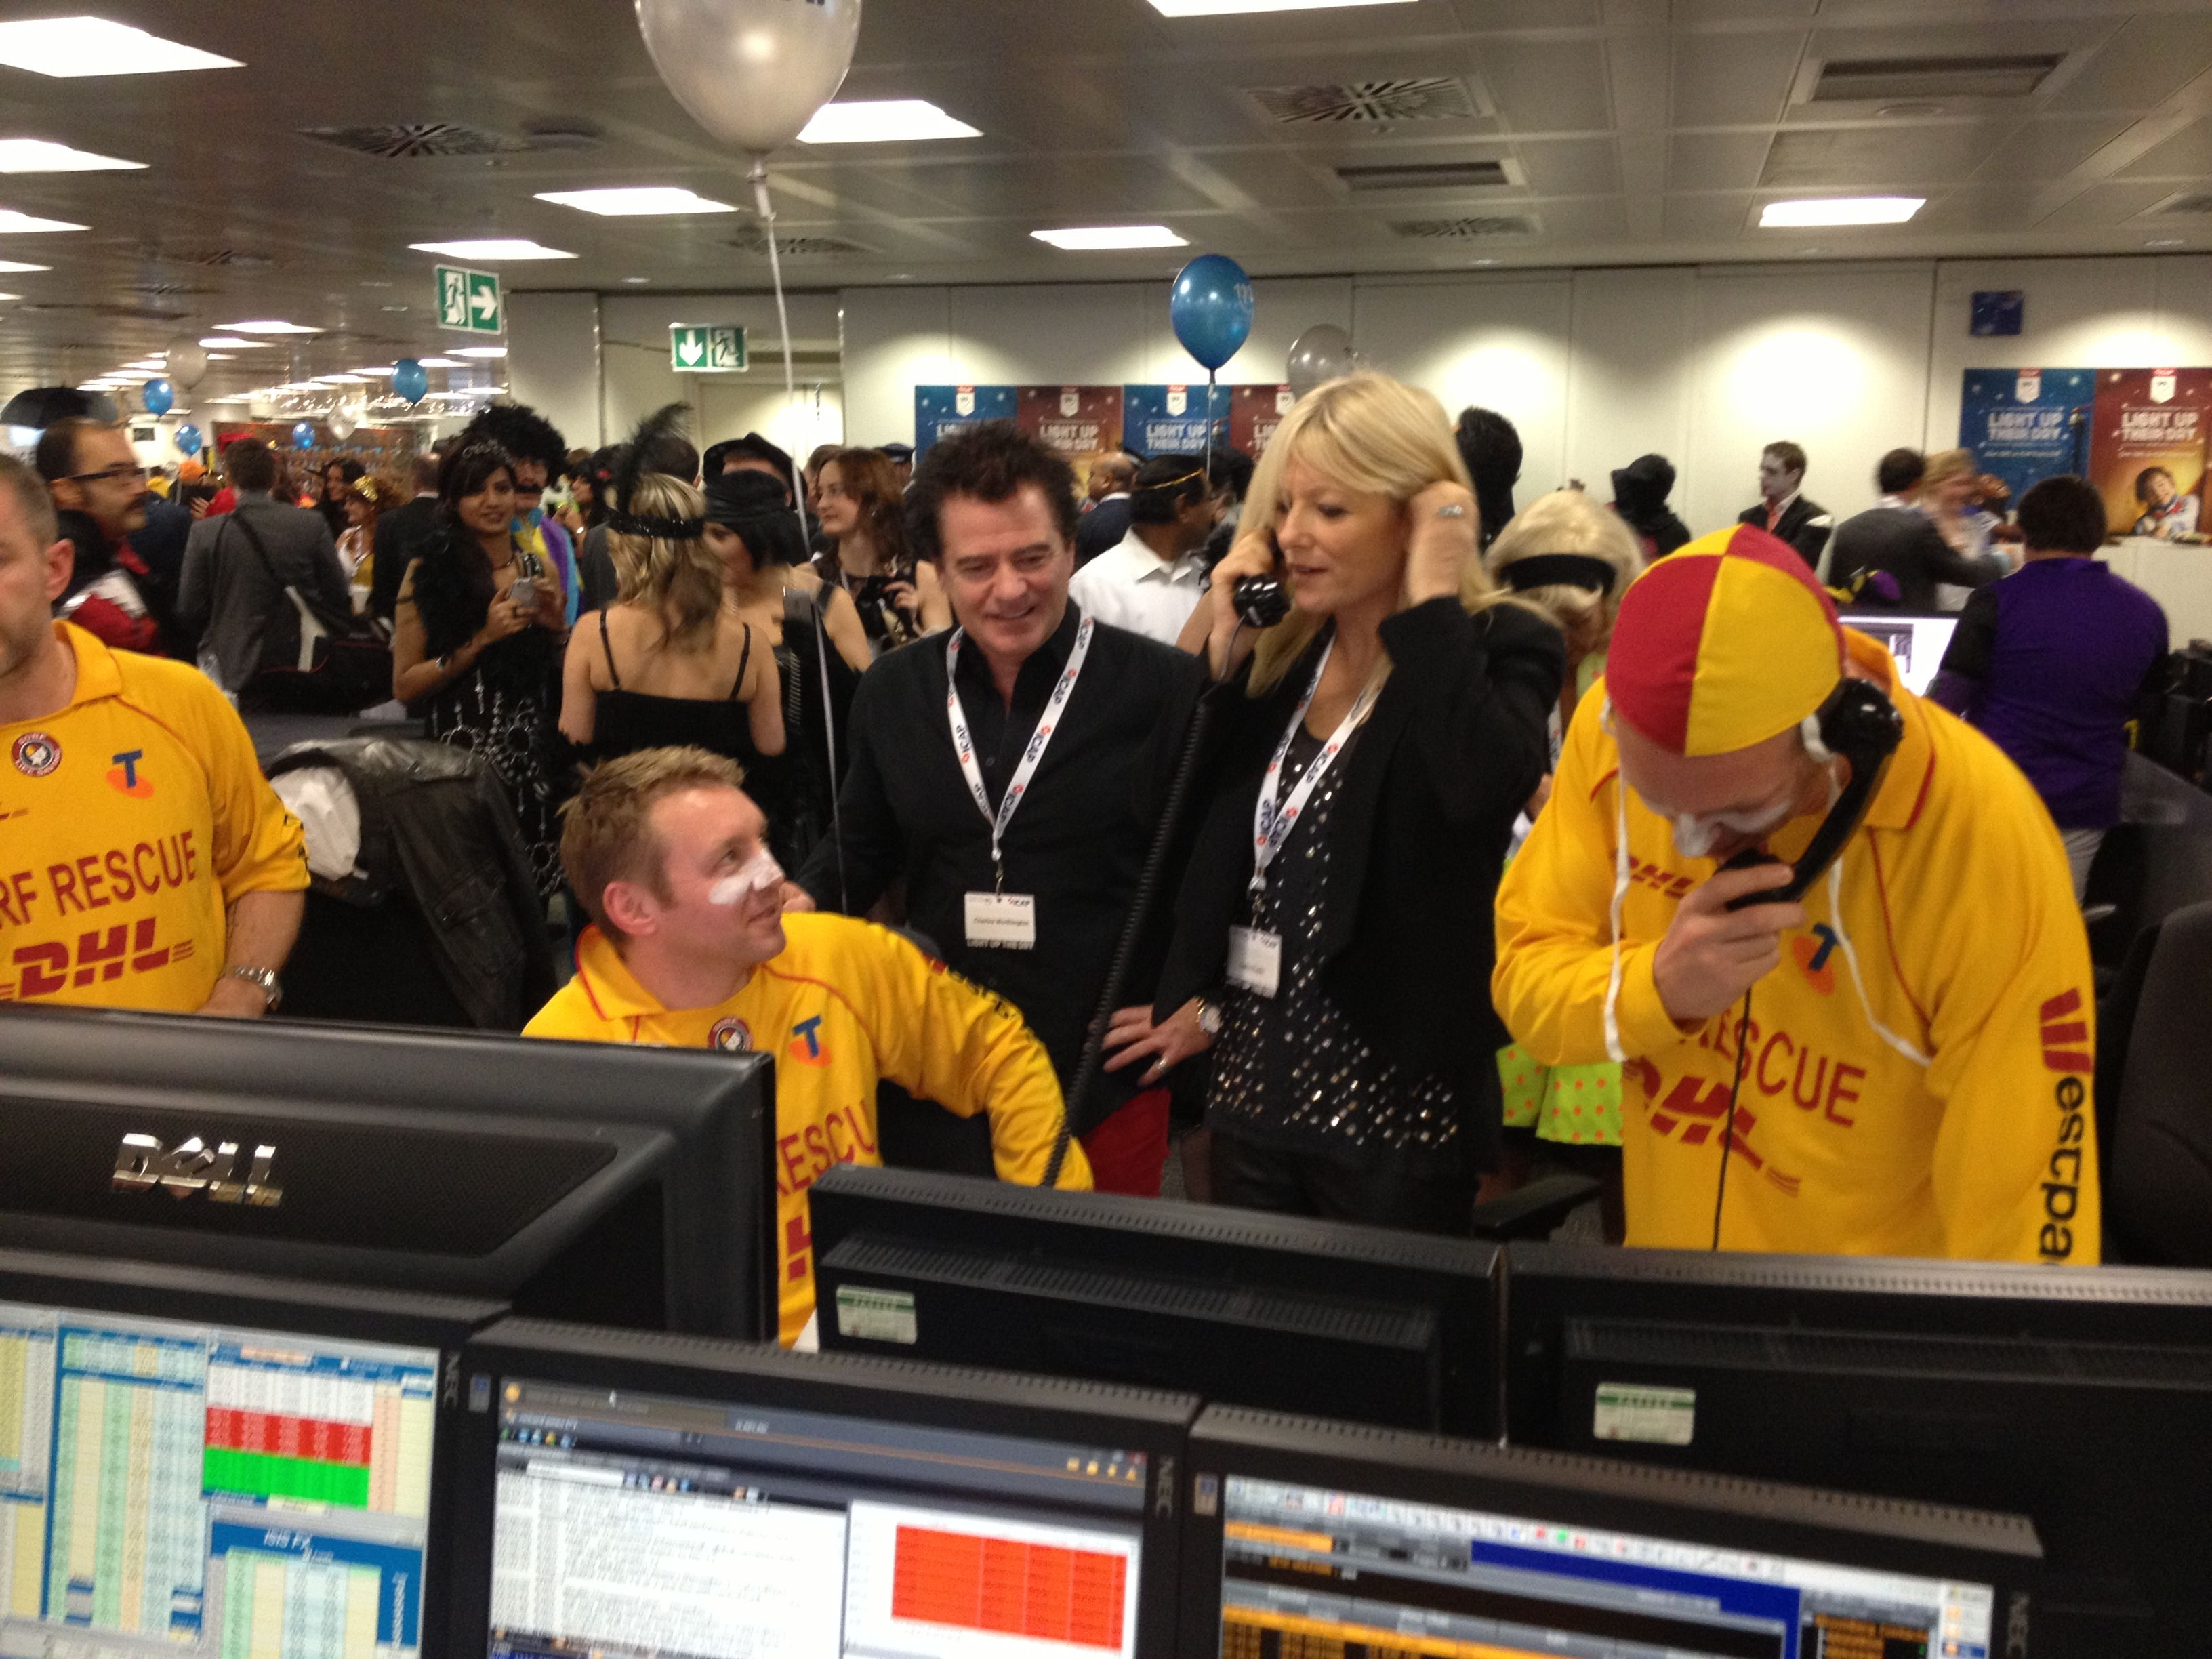 Gaby Roslin closing a deal with the life guards #icapcharityday #lgfbuk